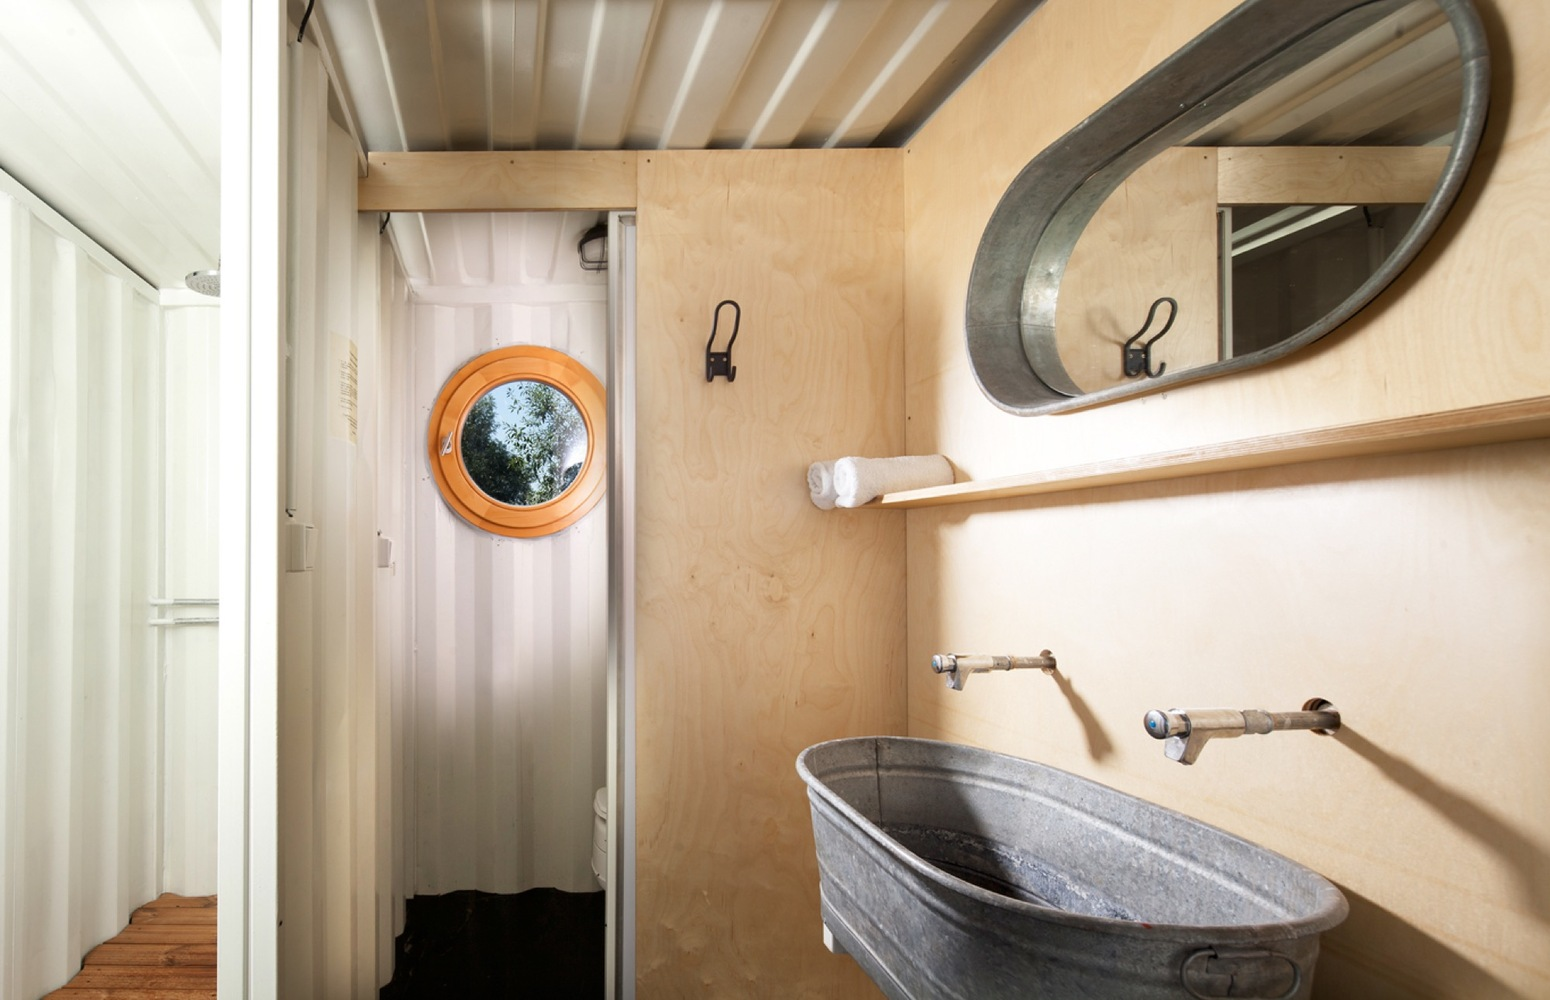 Shipping container hotel offers eco-friendly getaway for surfing nomads